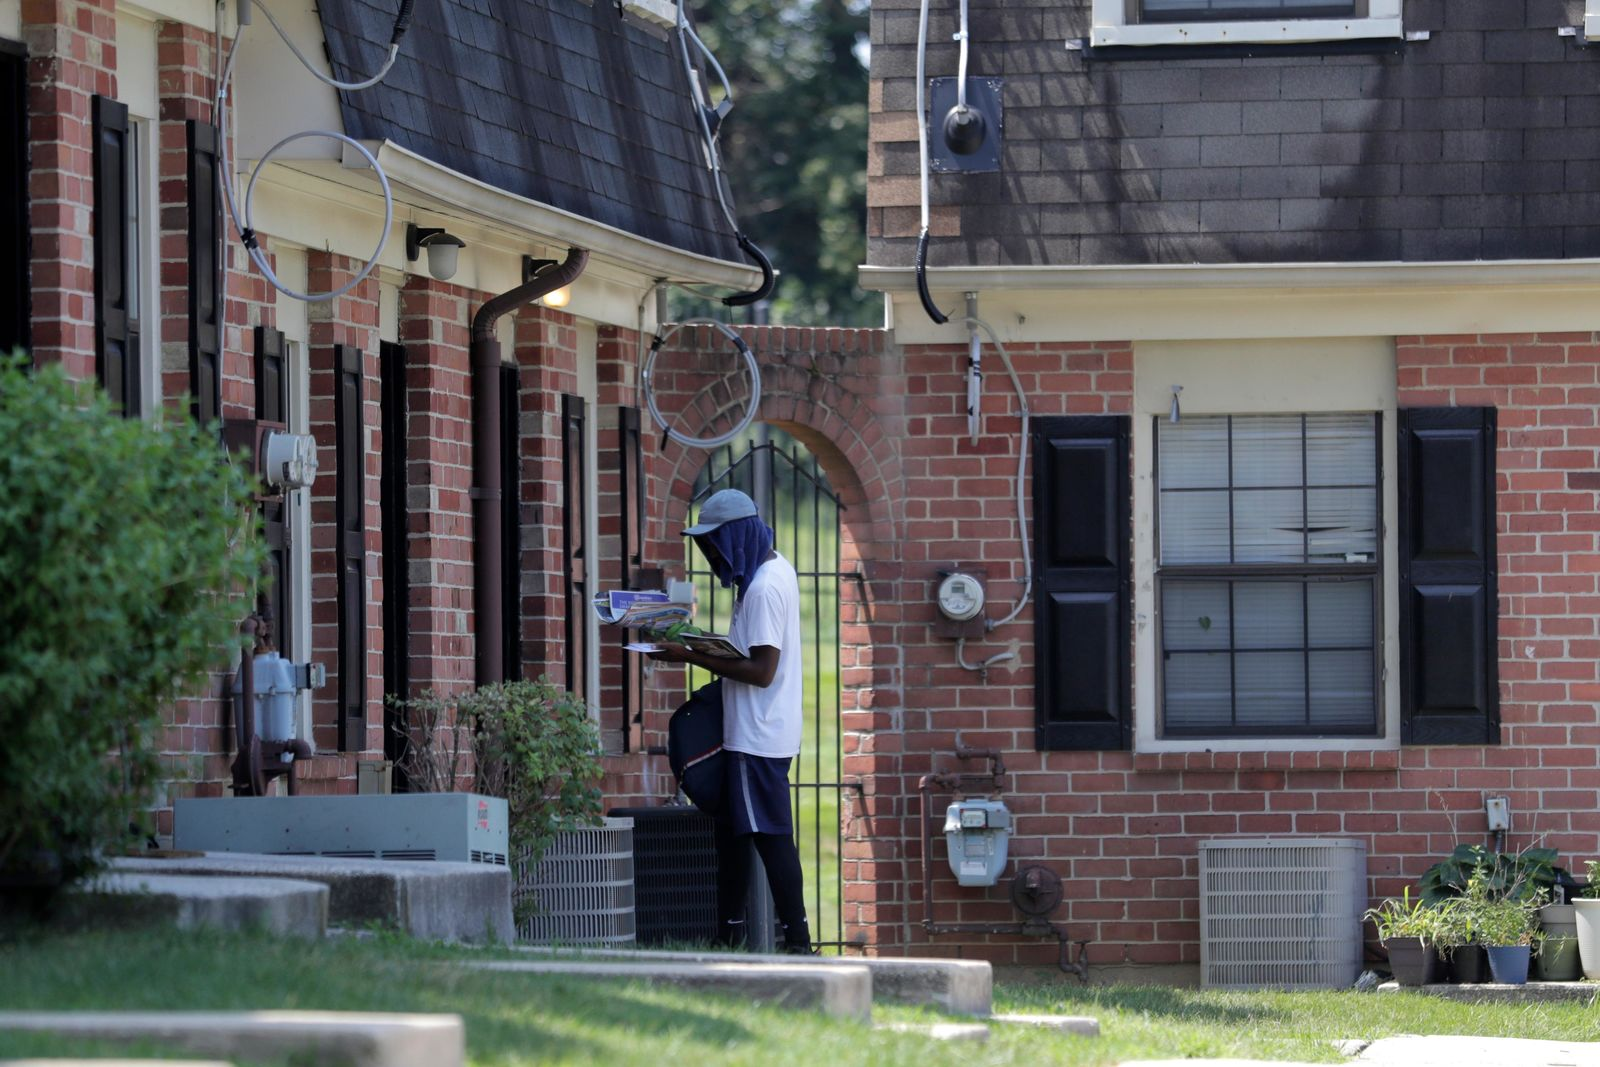 A mail carrier delivers mail at a home at the Dutch Village apartments, Tuesday, July 30, 2019, in Baltimore. (AP Photo/Julio Cortez)